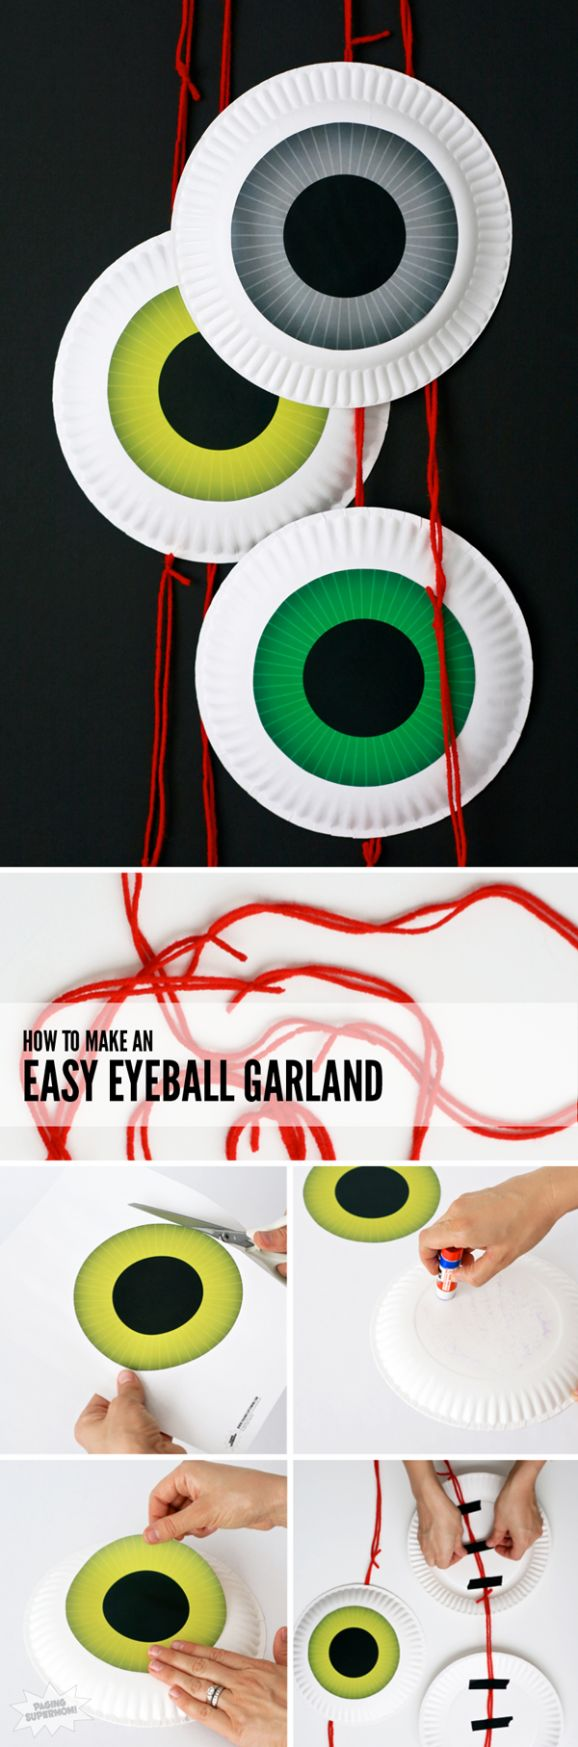 How to Make an EASY Eyeball Door Garland for Halloween using paper plates!